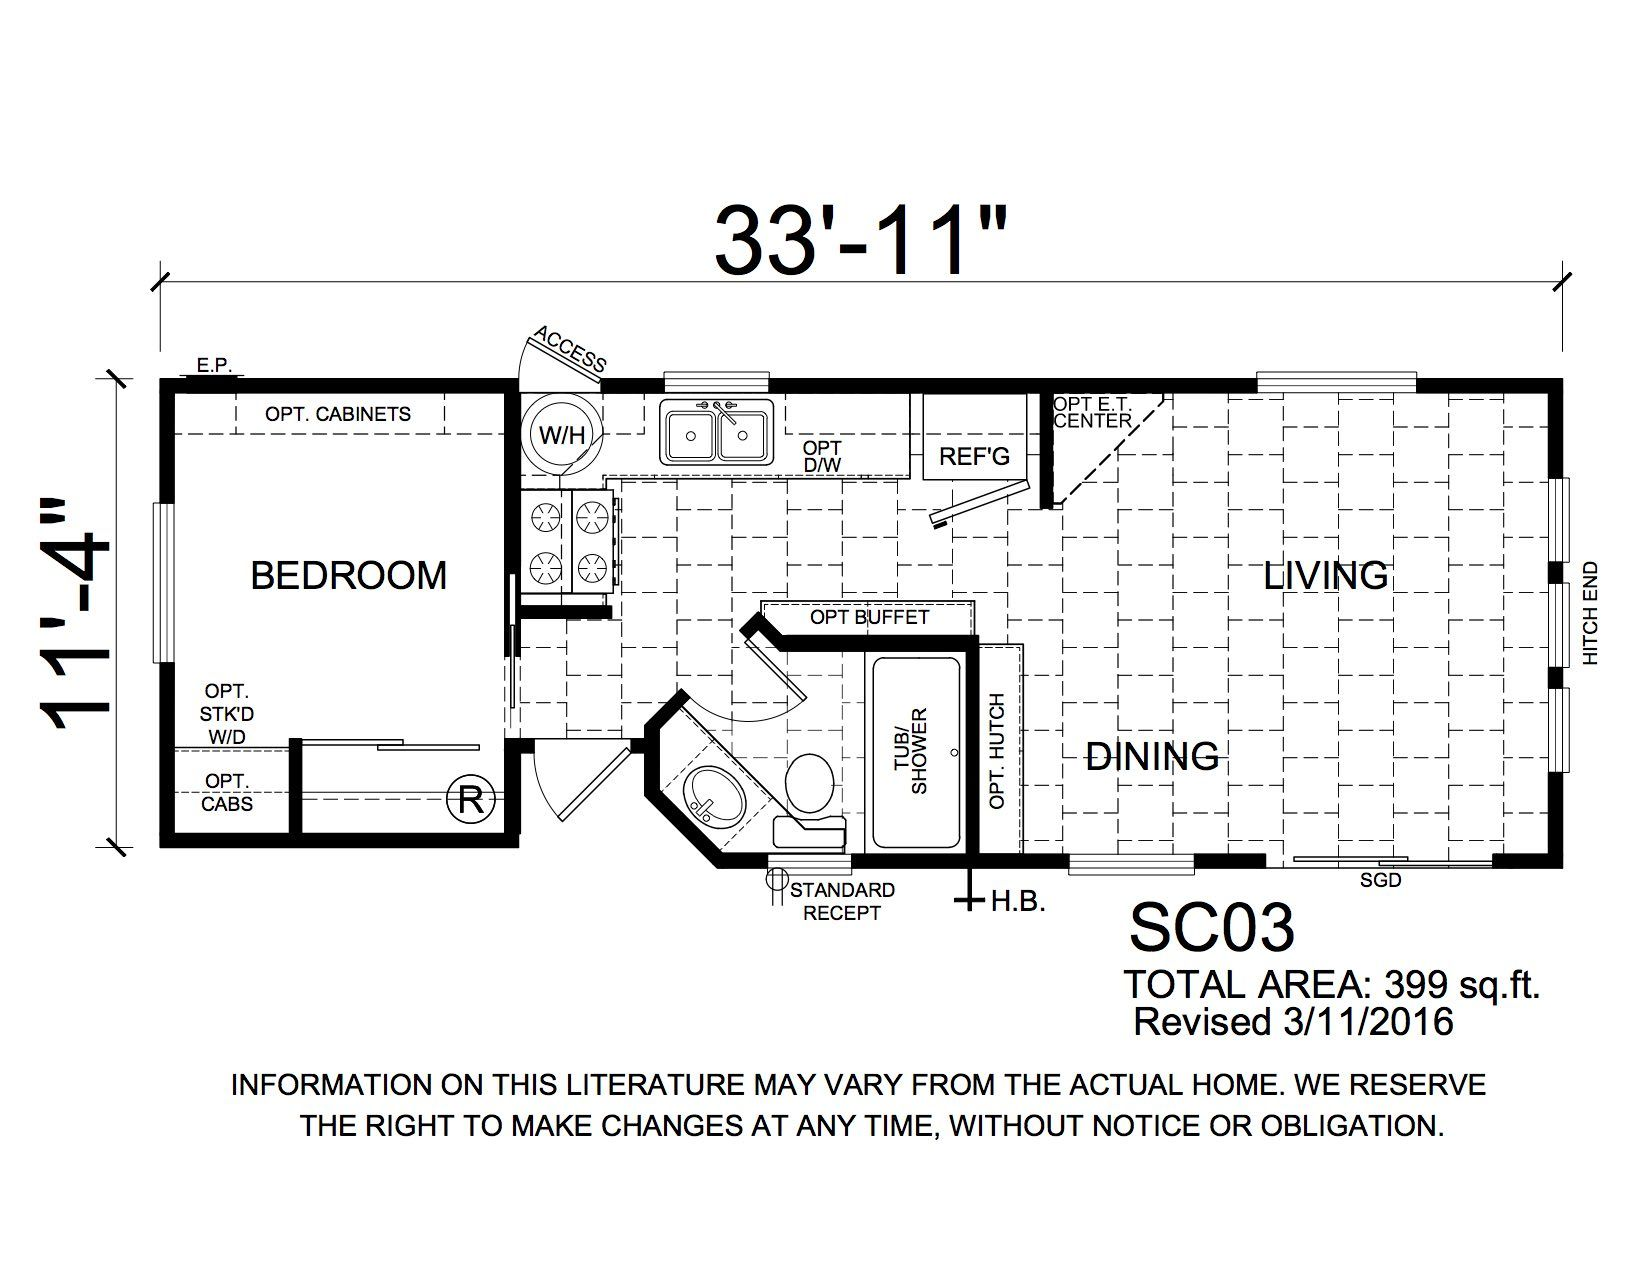 Homes Direct Modular Homes - Model SC3 - Floorplan